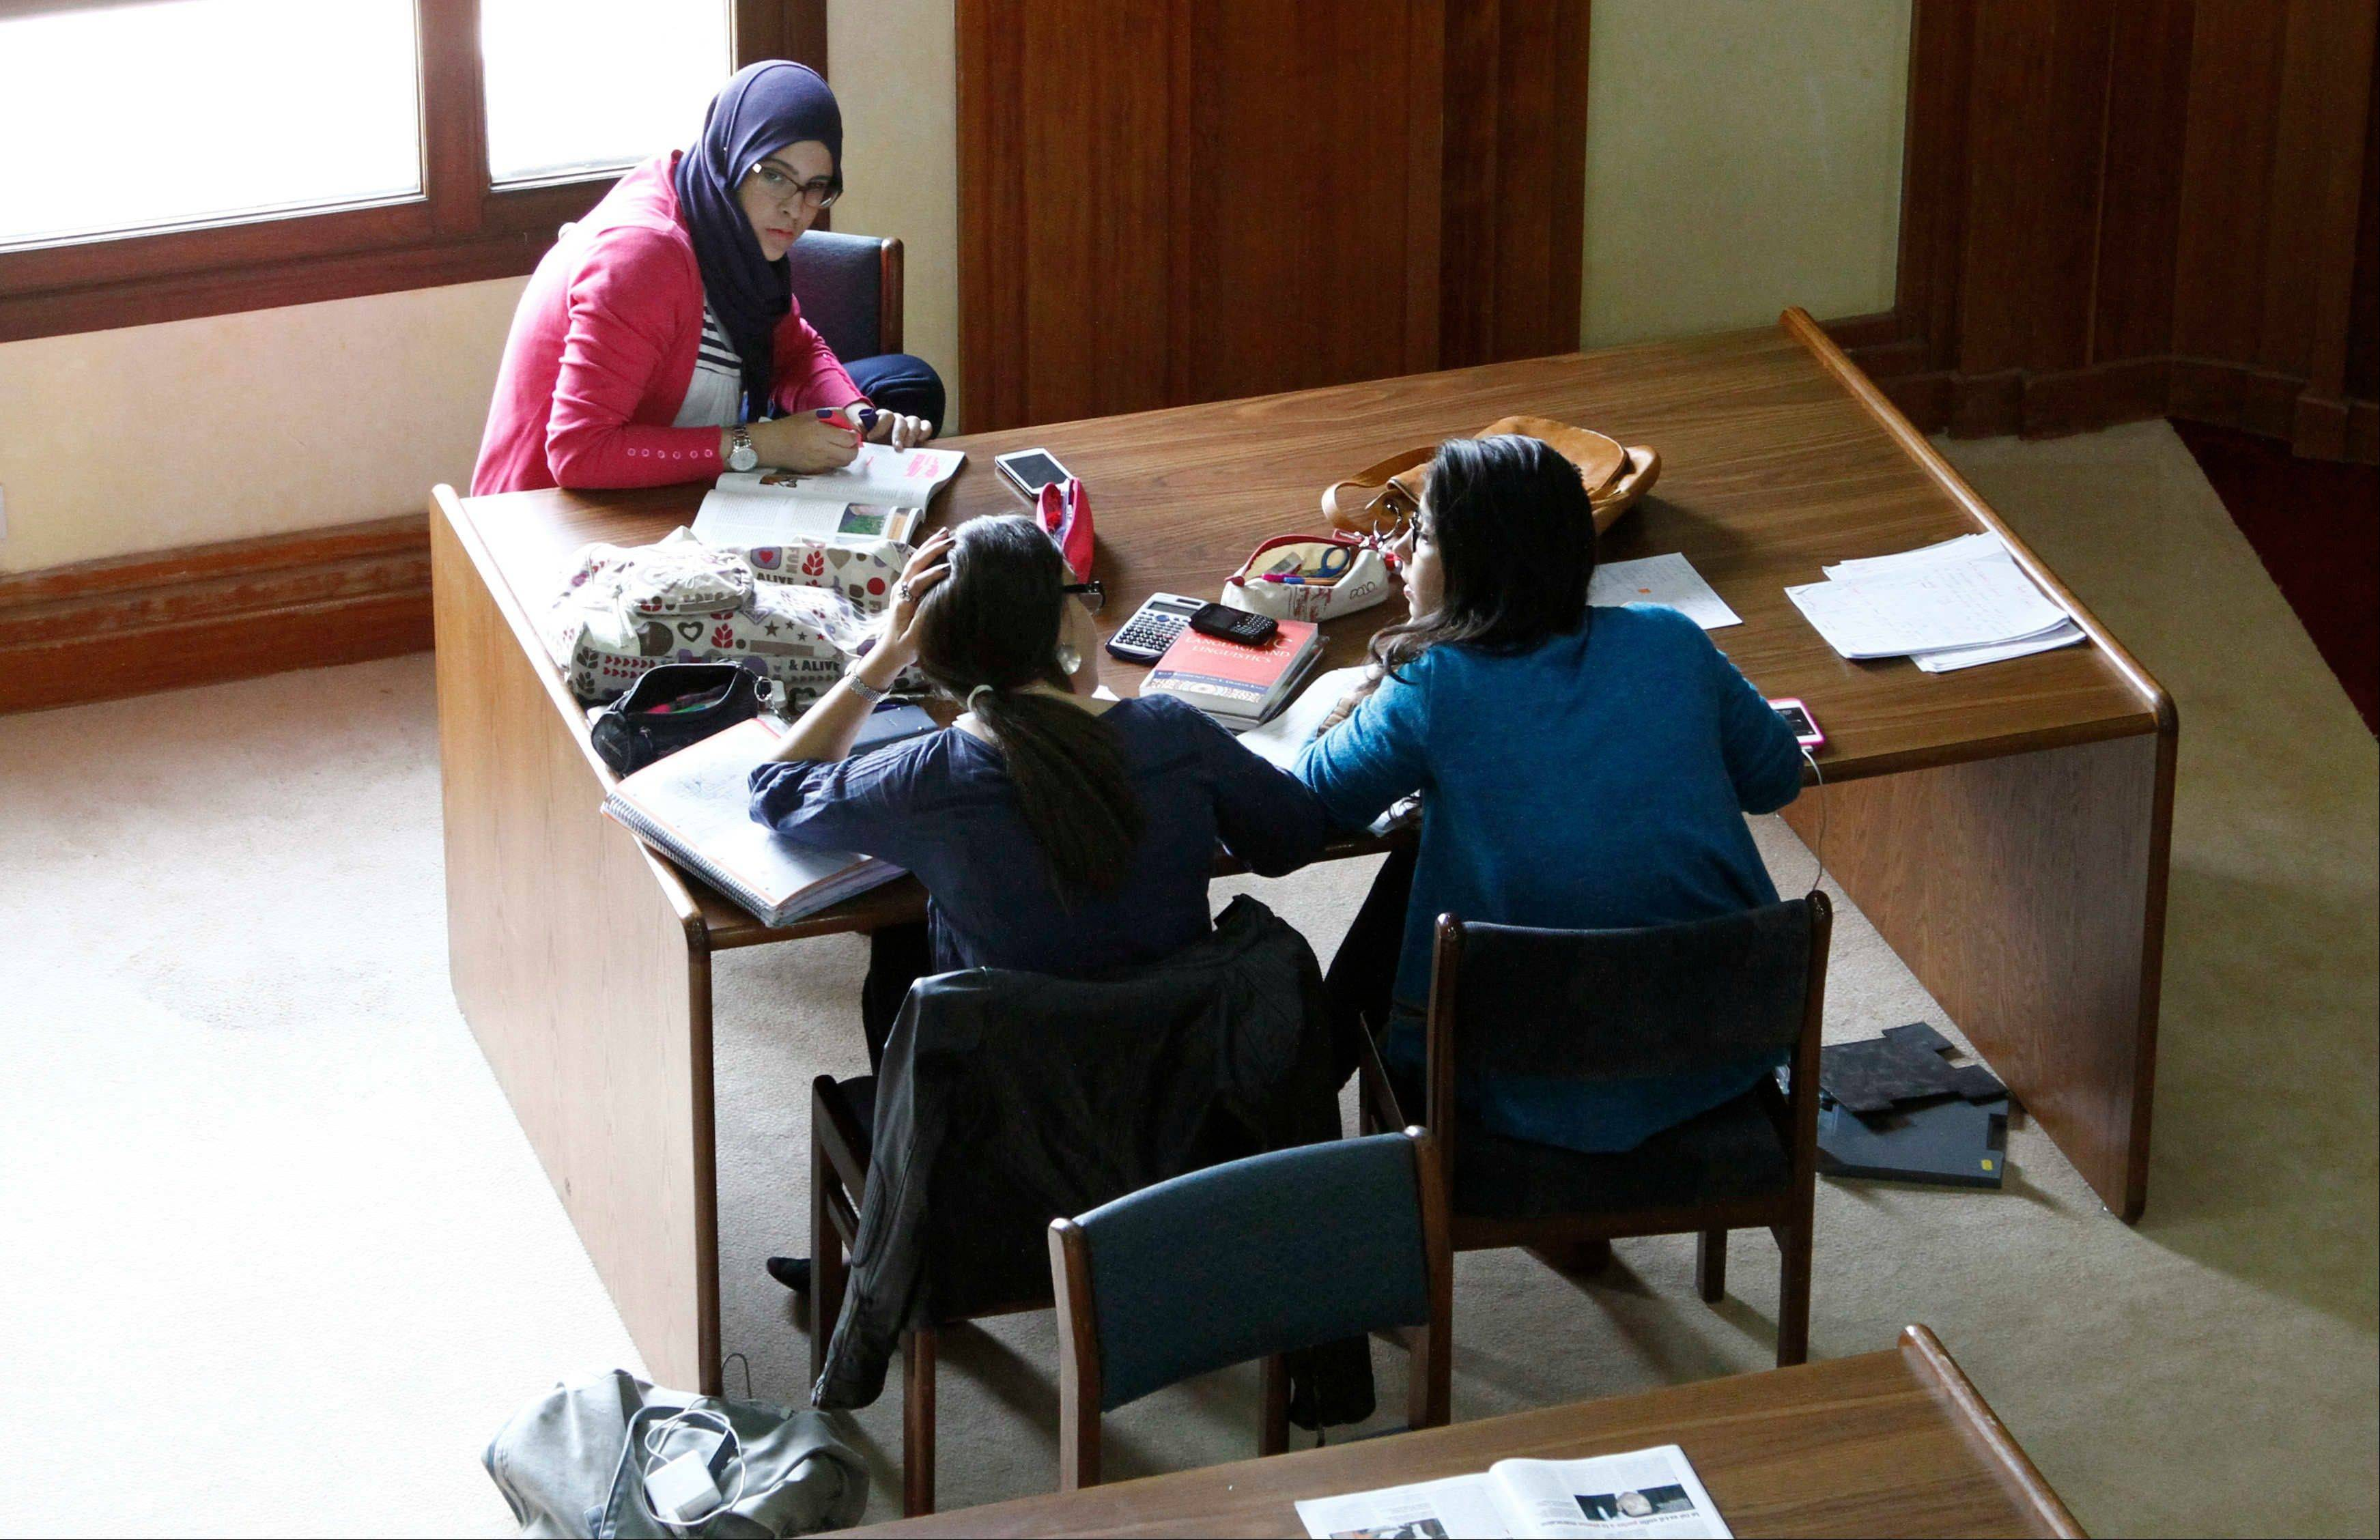 Students engage in group study at the Al Akhawayn University library, in Ifrane, Morocco. Morocco's public universities follow the traditional French model of early and strict separation of subjects. Al Akhawayn follows the model of St. John's College in New Mexico, which offers a �great books� curriculum based on the foundations of Western literature.